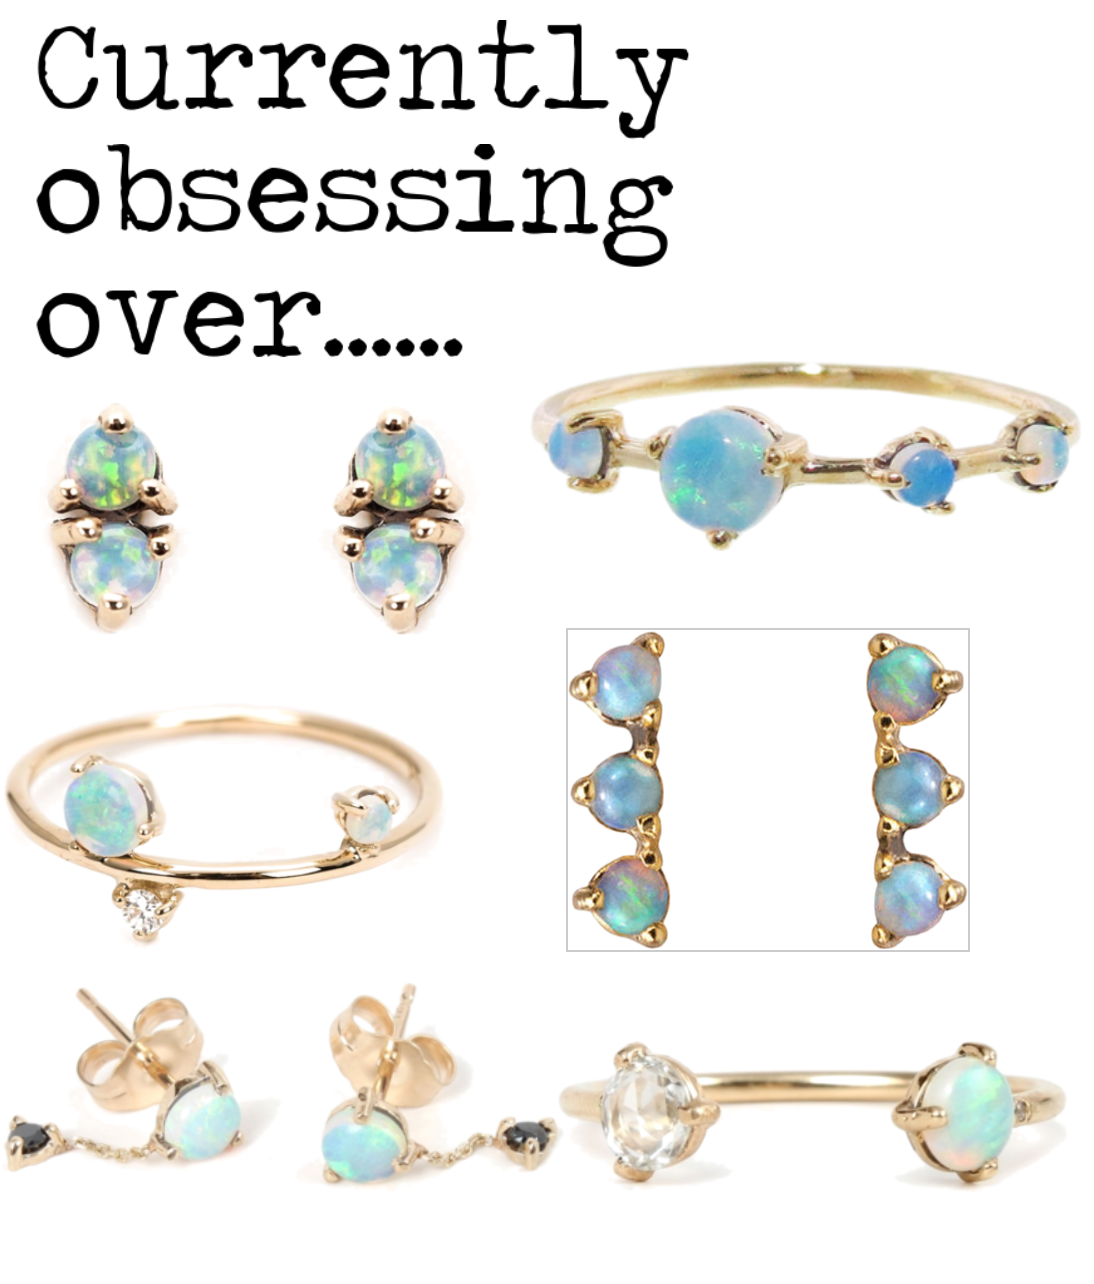 currently obsessing over: Opals